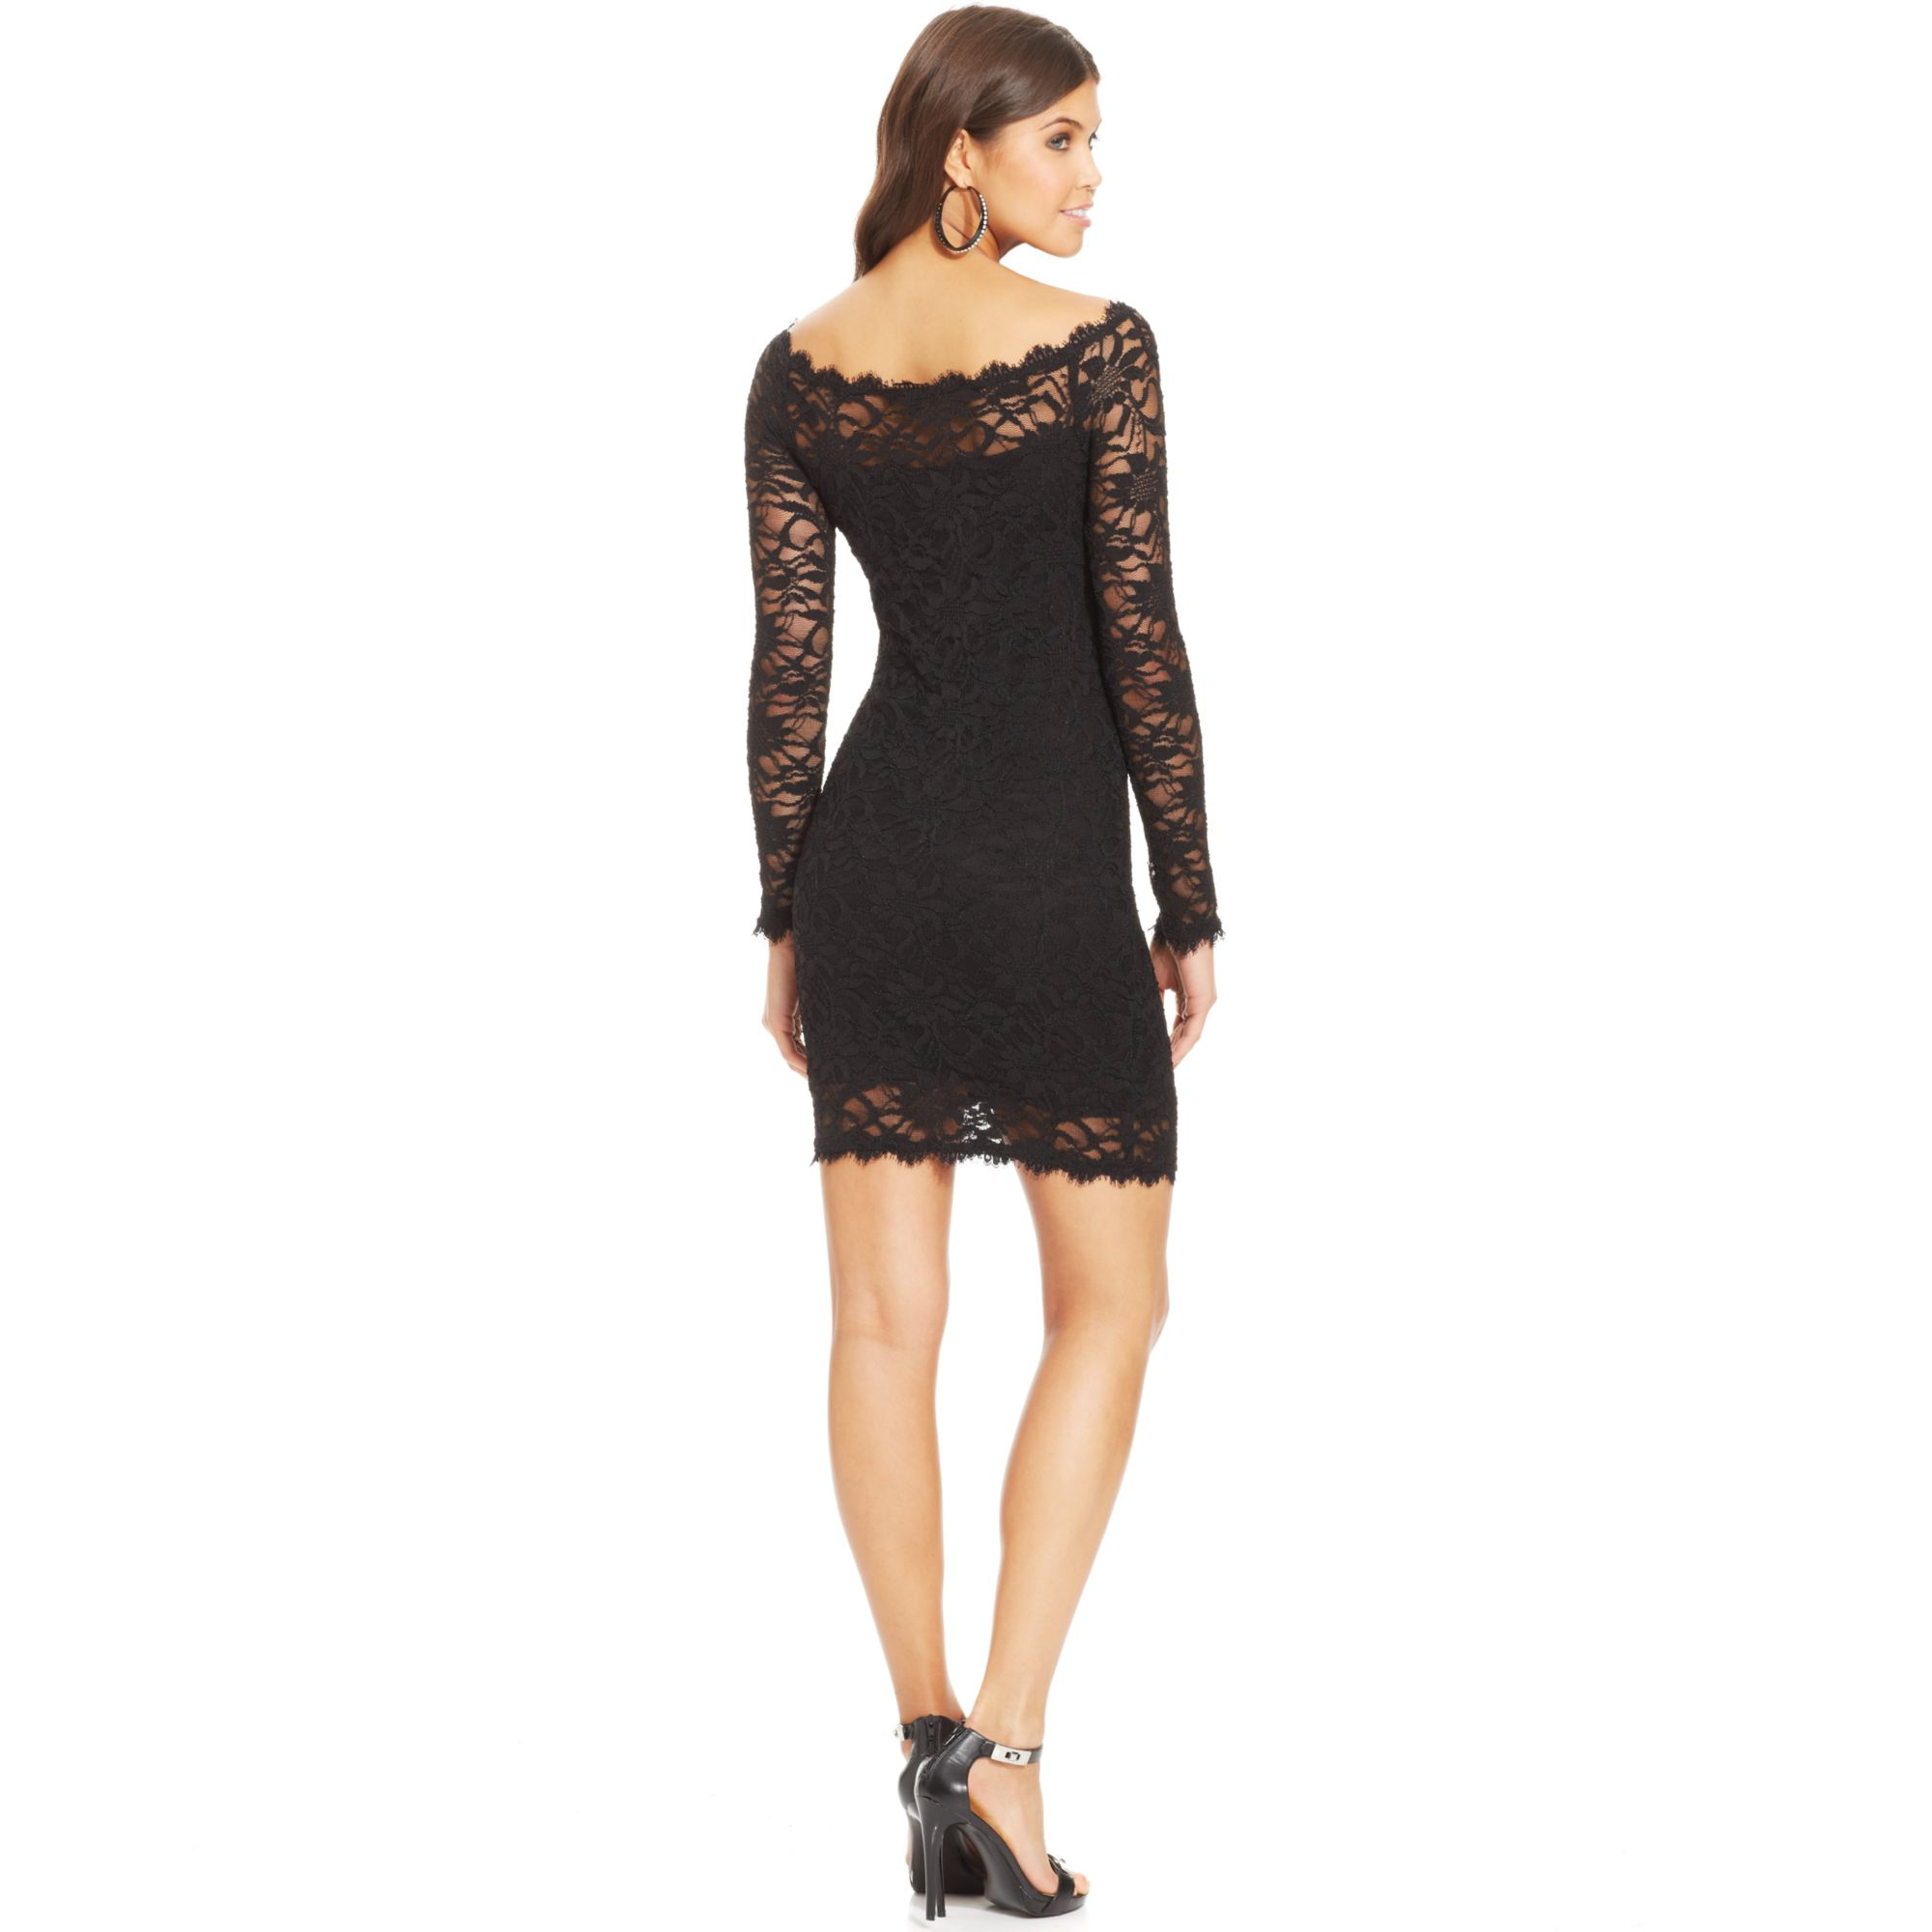 To acquire Dress lace juniors pictures trends